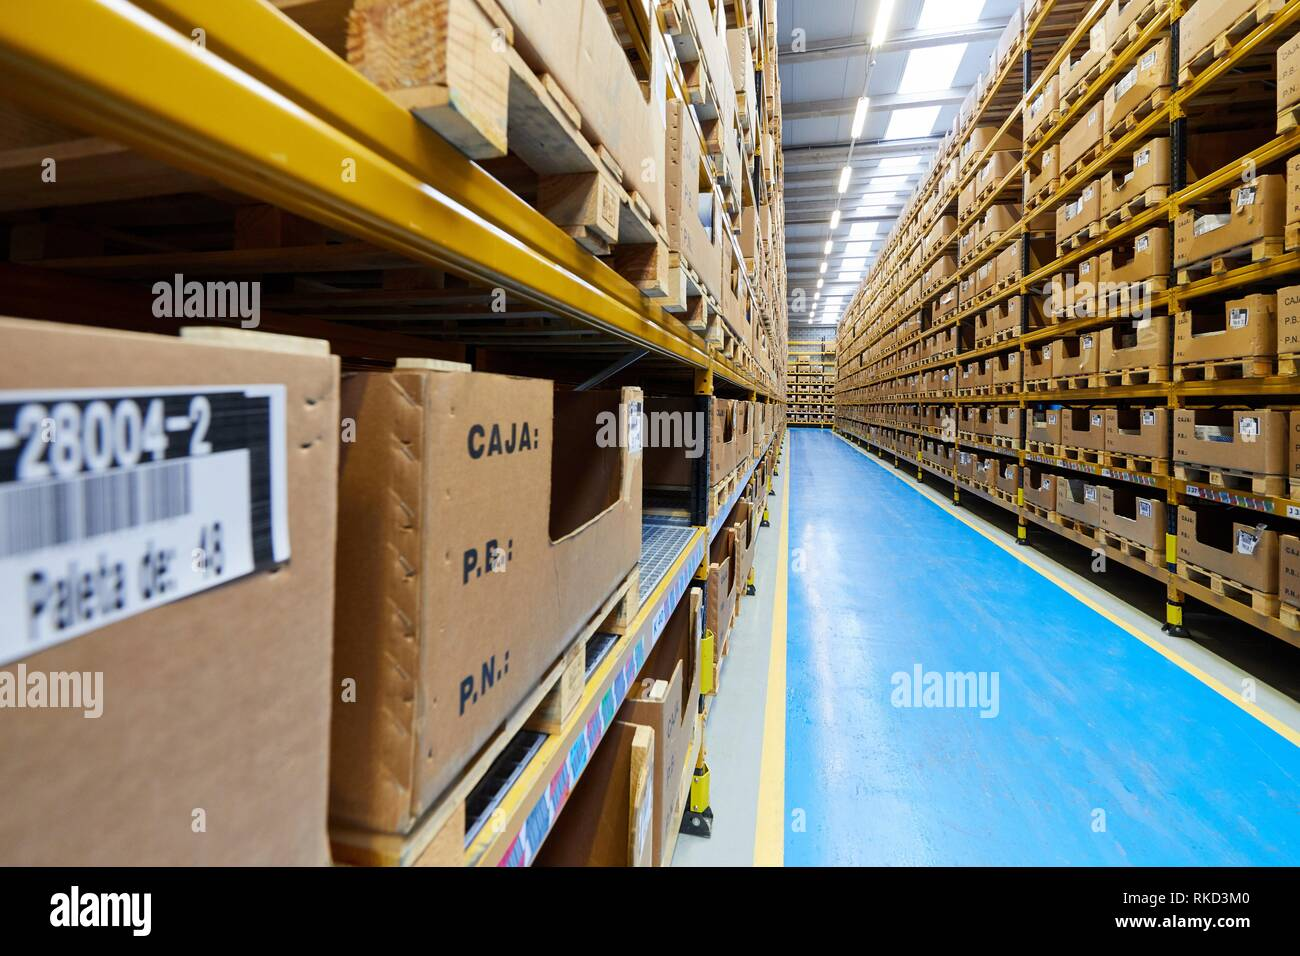 Warehouse, Automotive parts, Metallurgical industry, Gipuzkoa, Basque Country, Spain, Europe - Stock Image